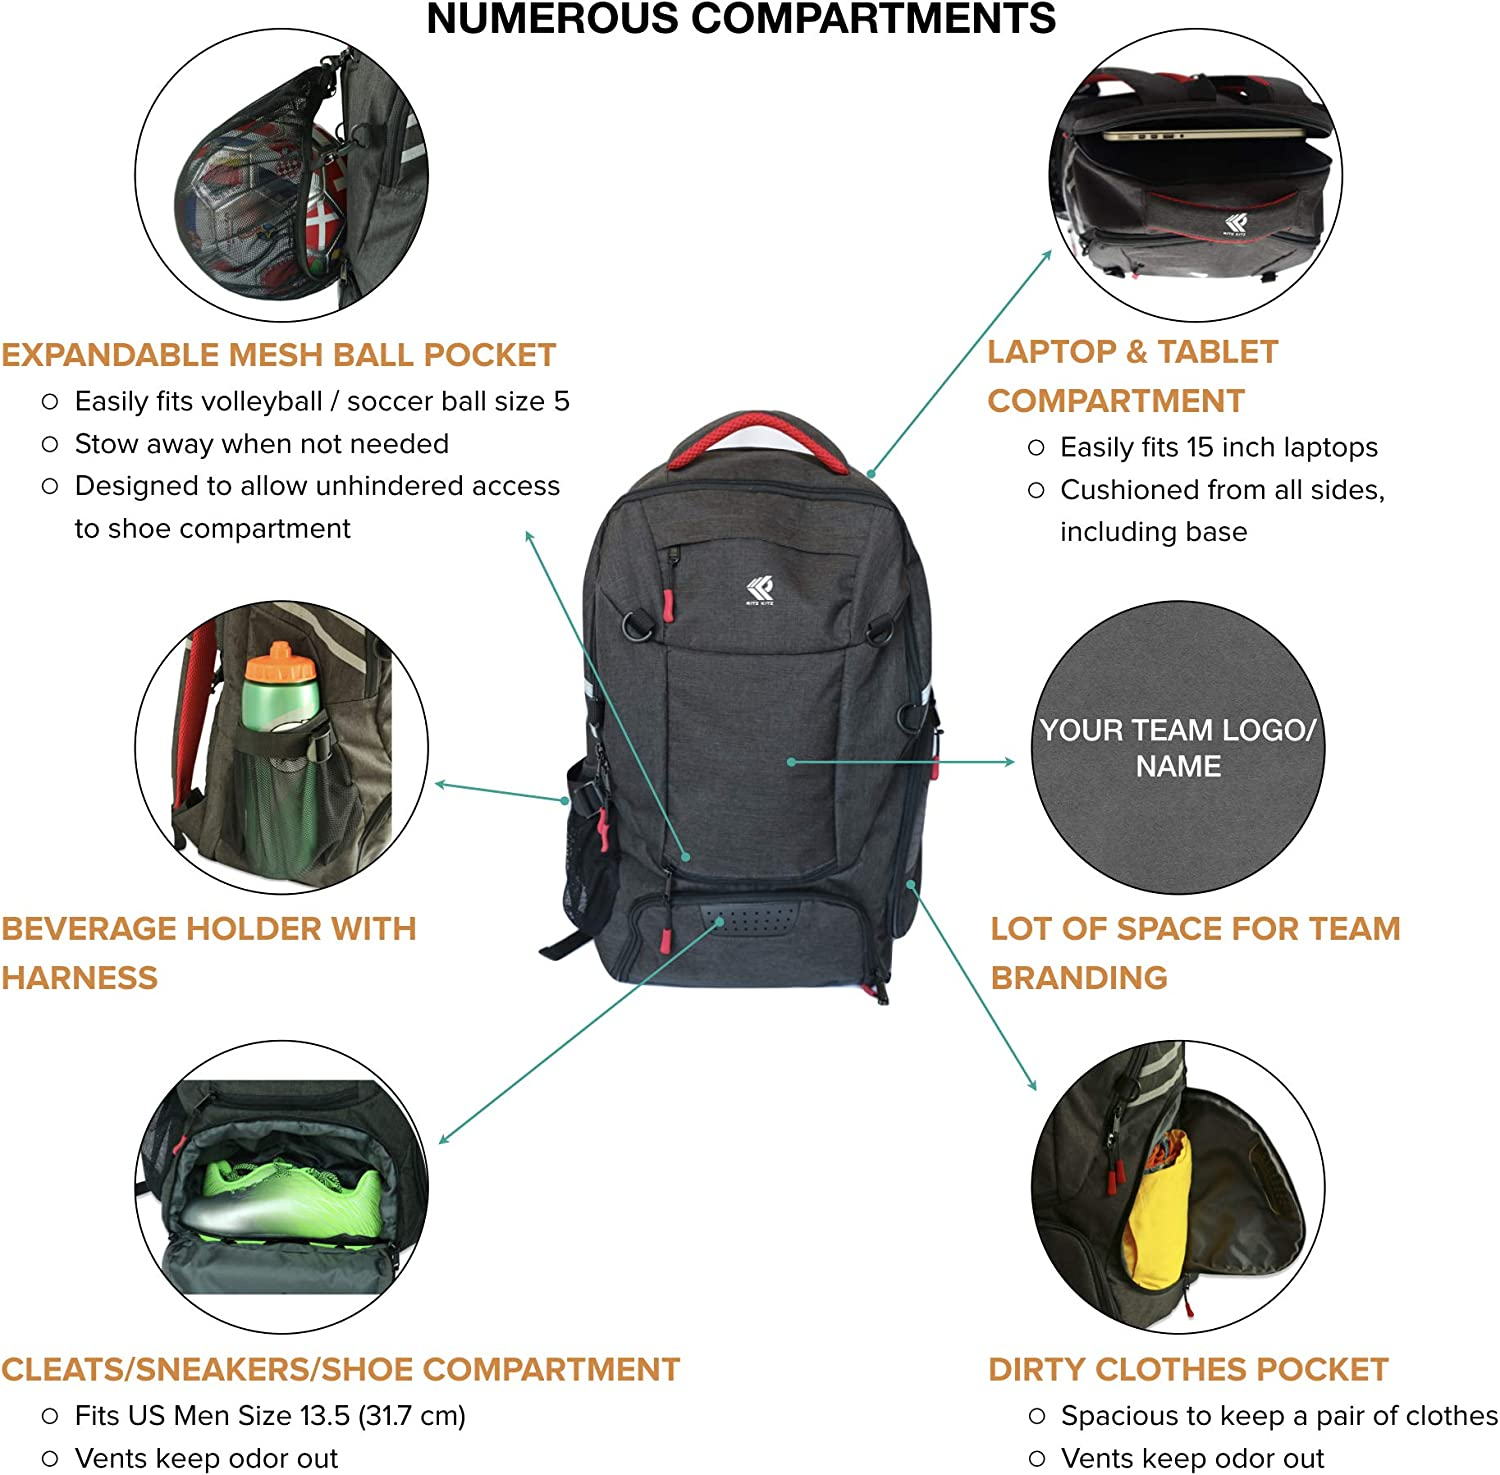 Backpack for Soccer Travel Separate Ball Men School Football Shoe Youth RitzKitz The Ultimate Sports Bag Laptop /& Dirty Clothes Compartments Basketball Gym for Boys Girls /& Women